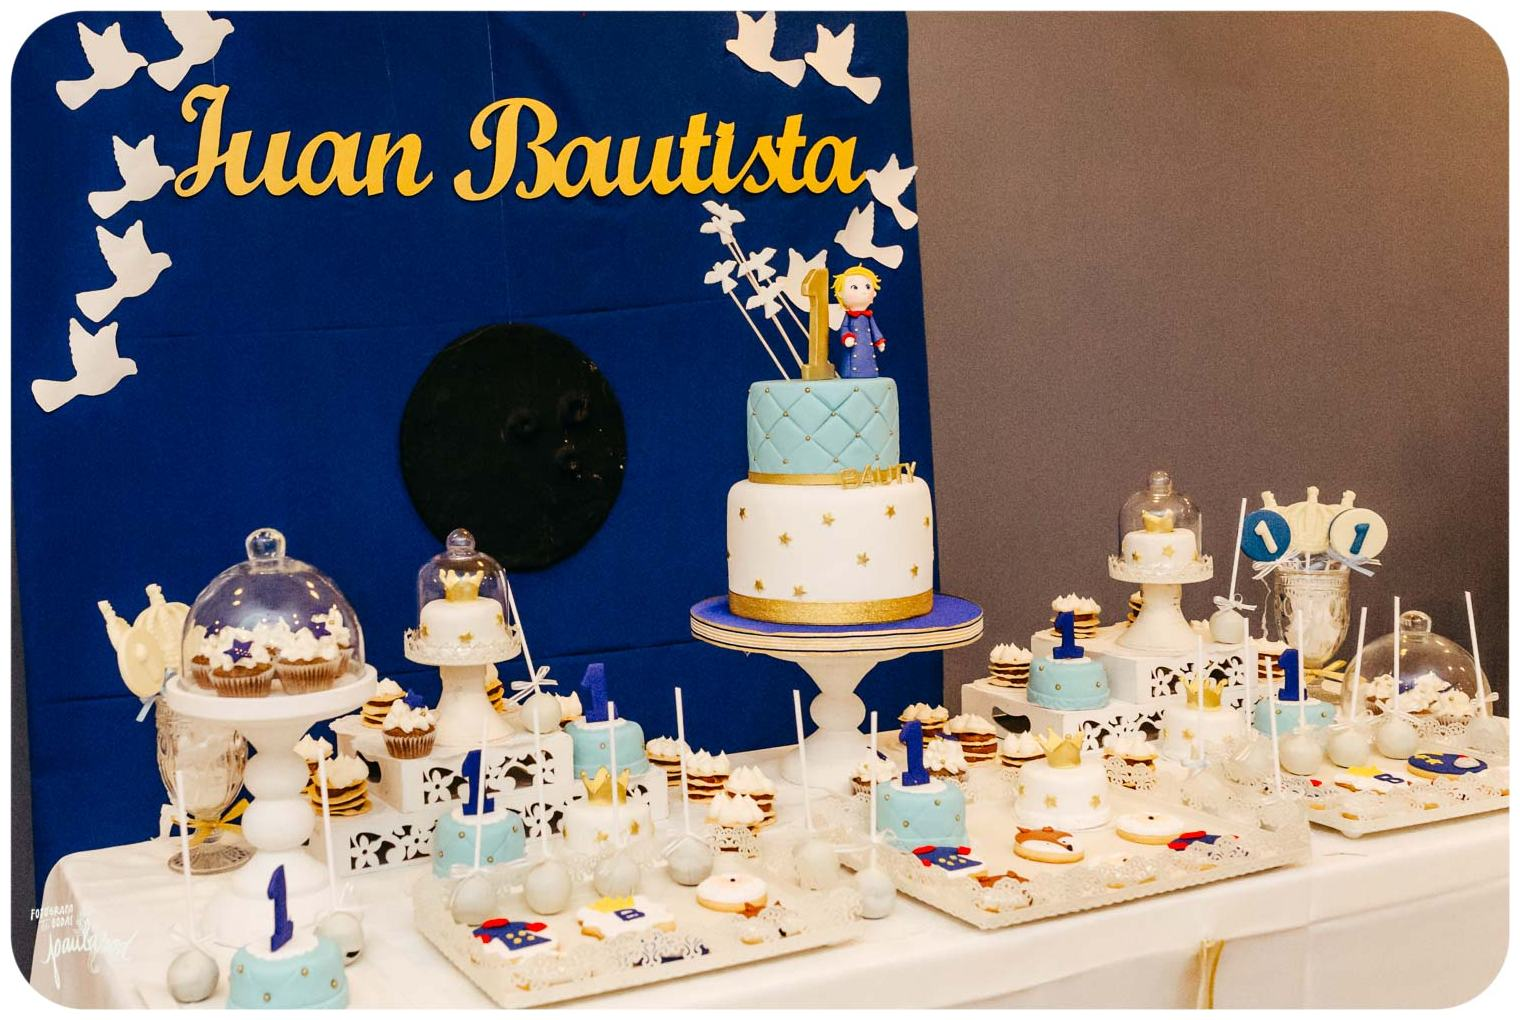 Catering dulce para eventos infantiles.jpg